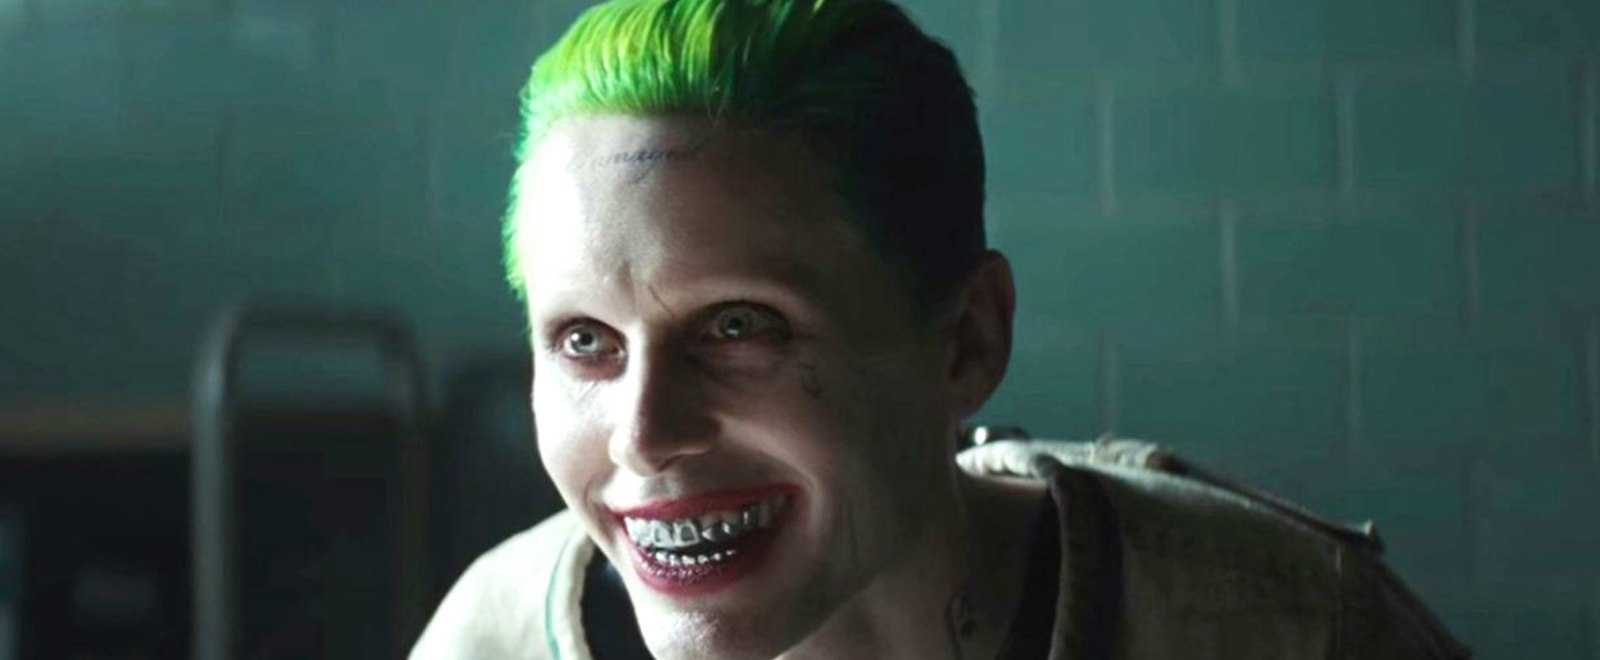 Zack Snyder And David Ayer Bonded Over Jared Leto In 'Suicide Squad'